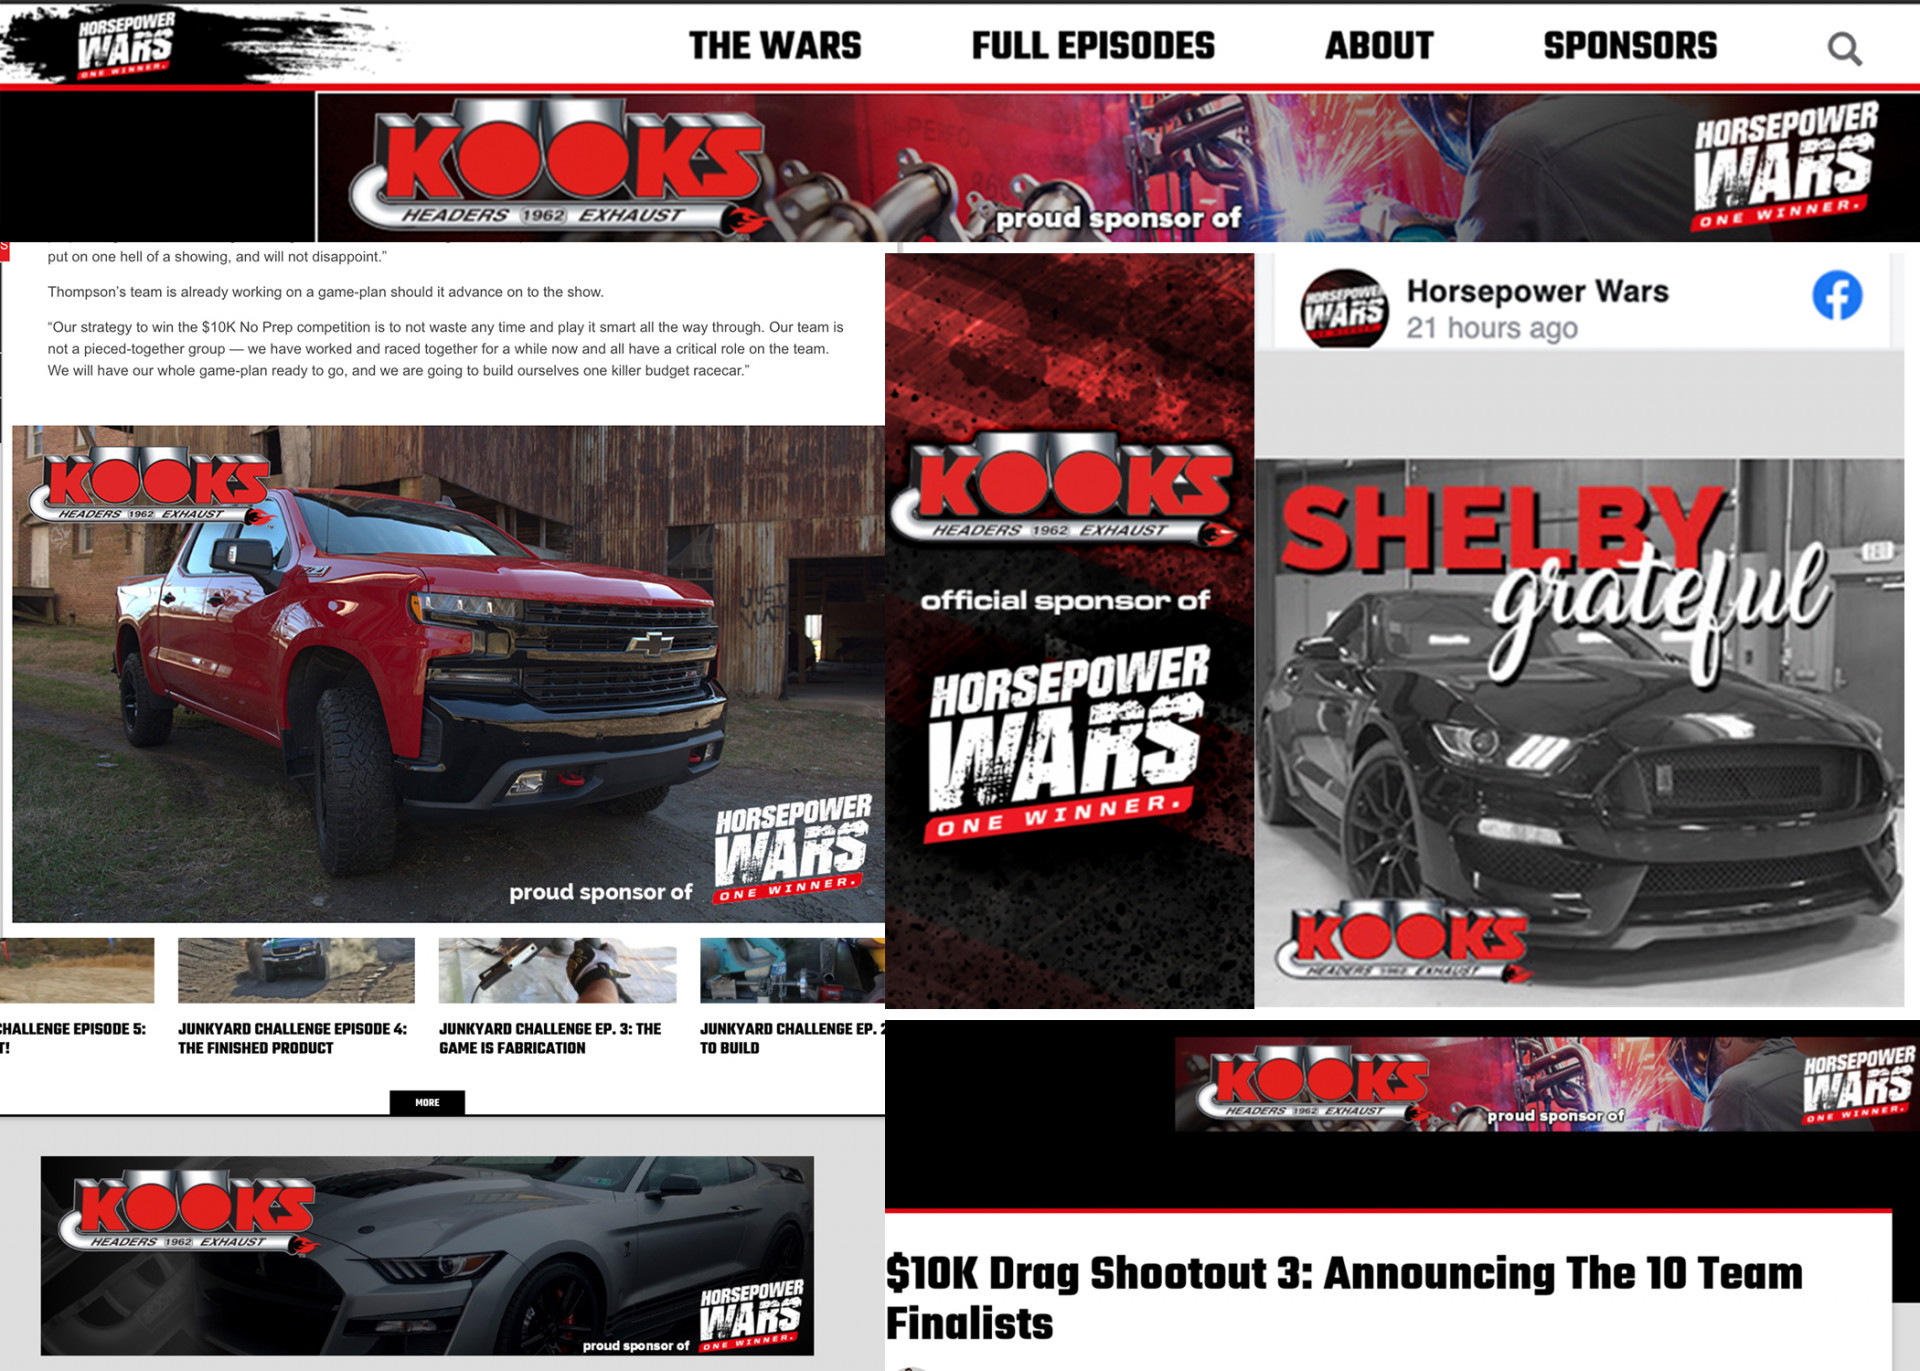 Kooks Headers and Exhaust Ads on Horsepower Wars